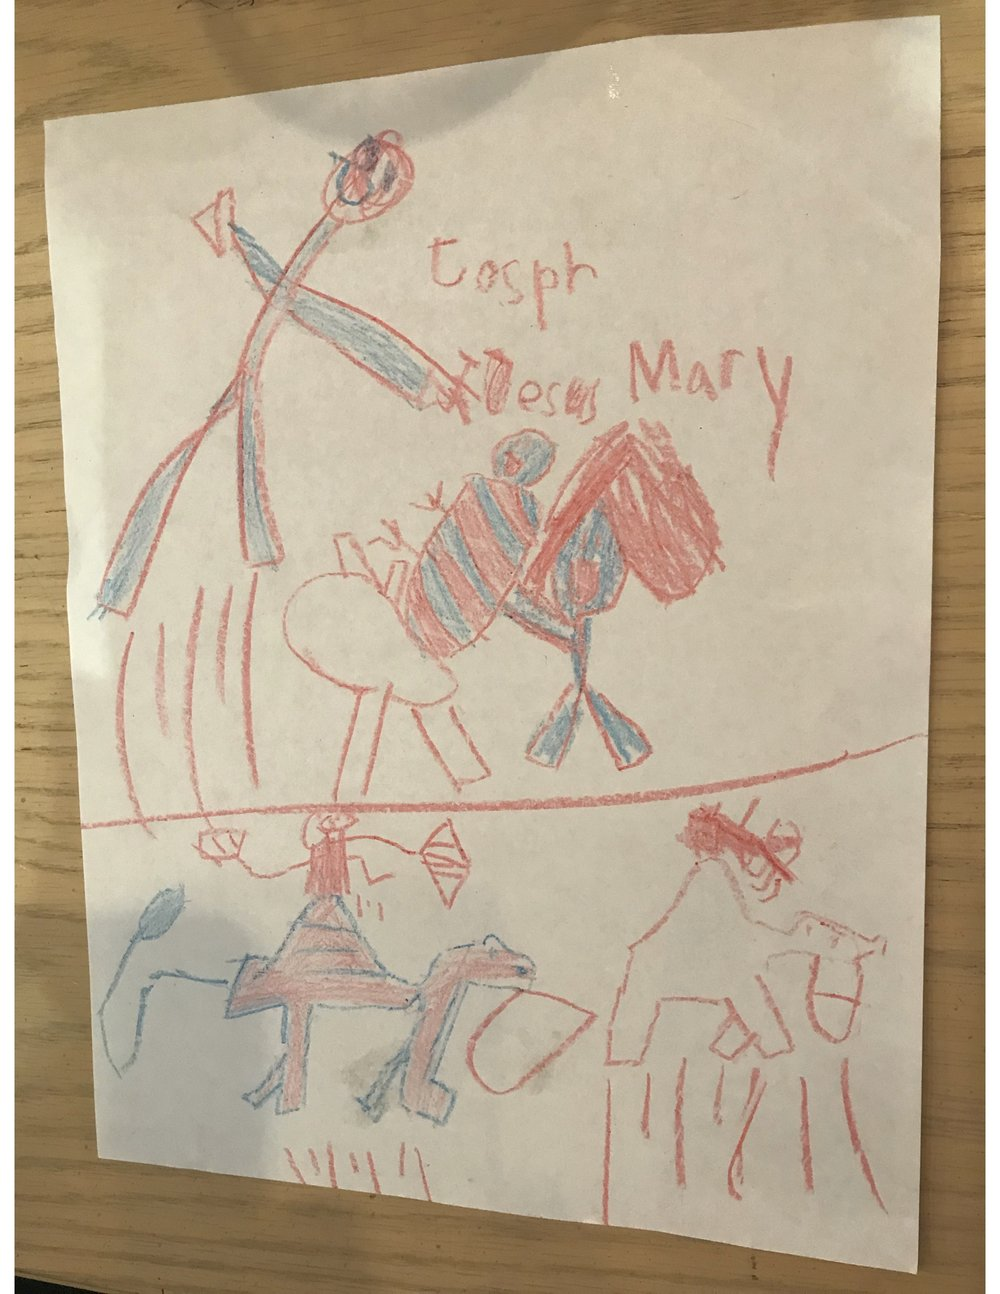 Lucy's drawing of the nativity scene. I'm not sure what the lines are under the characters, but I think it might be grass, or maybe footprints? I love it! Thank you Lucy for sharing this with us.